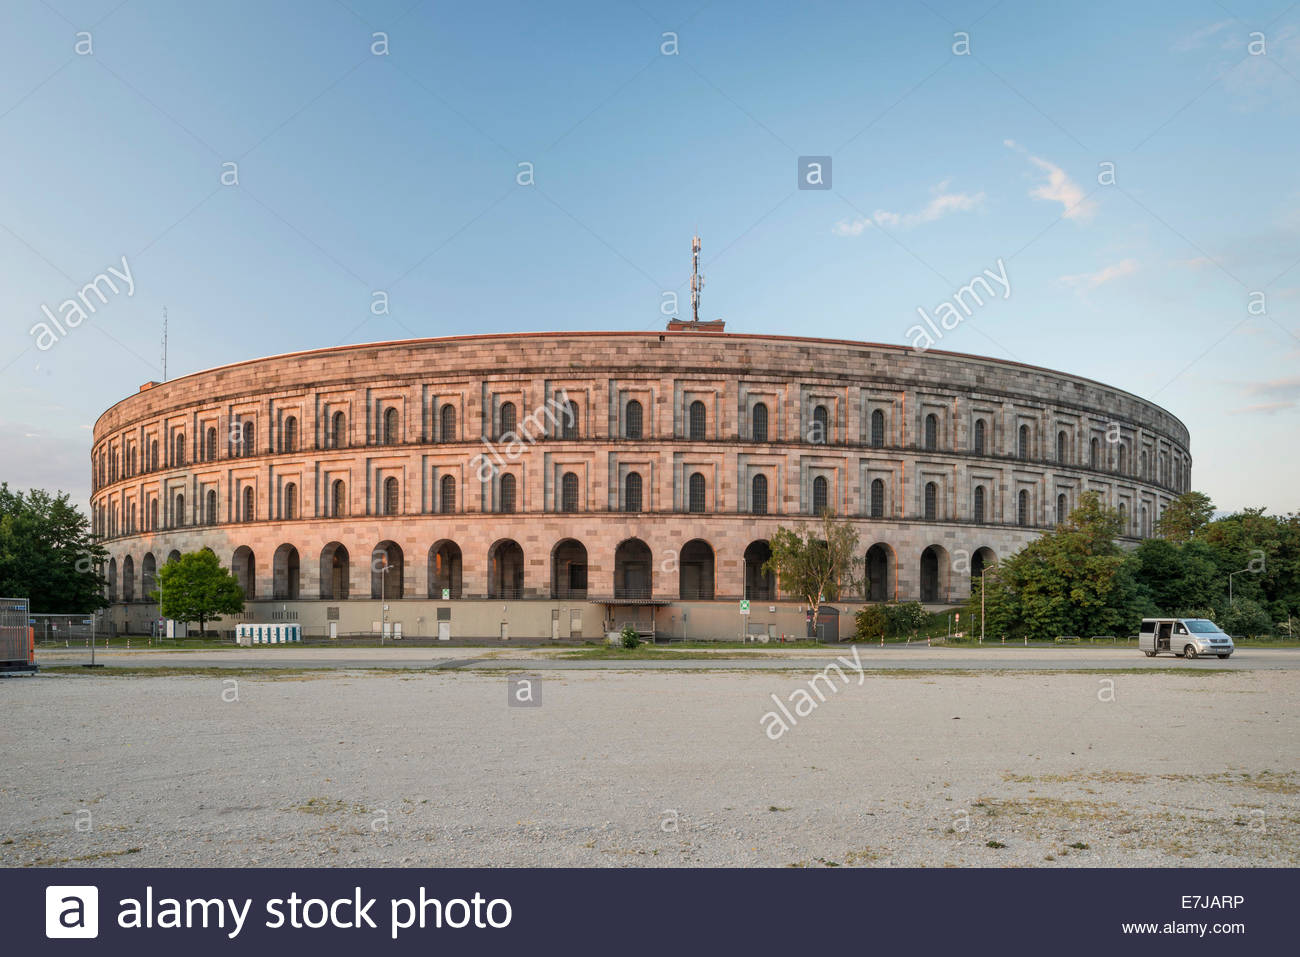 Nazi Party Stock Photos & Nazi Party Stock Images.